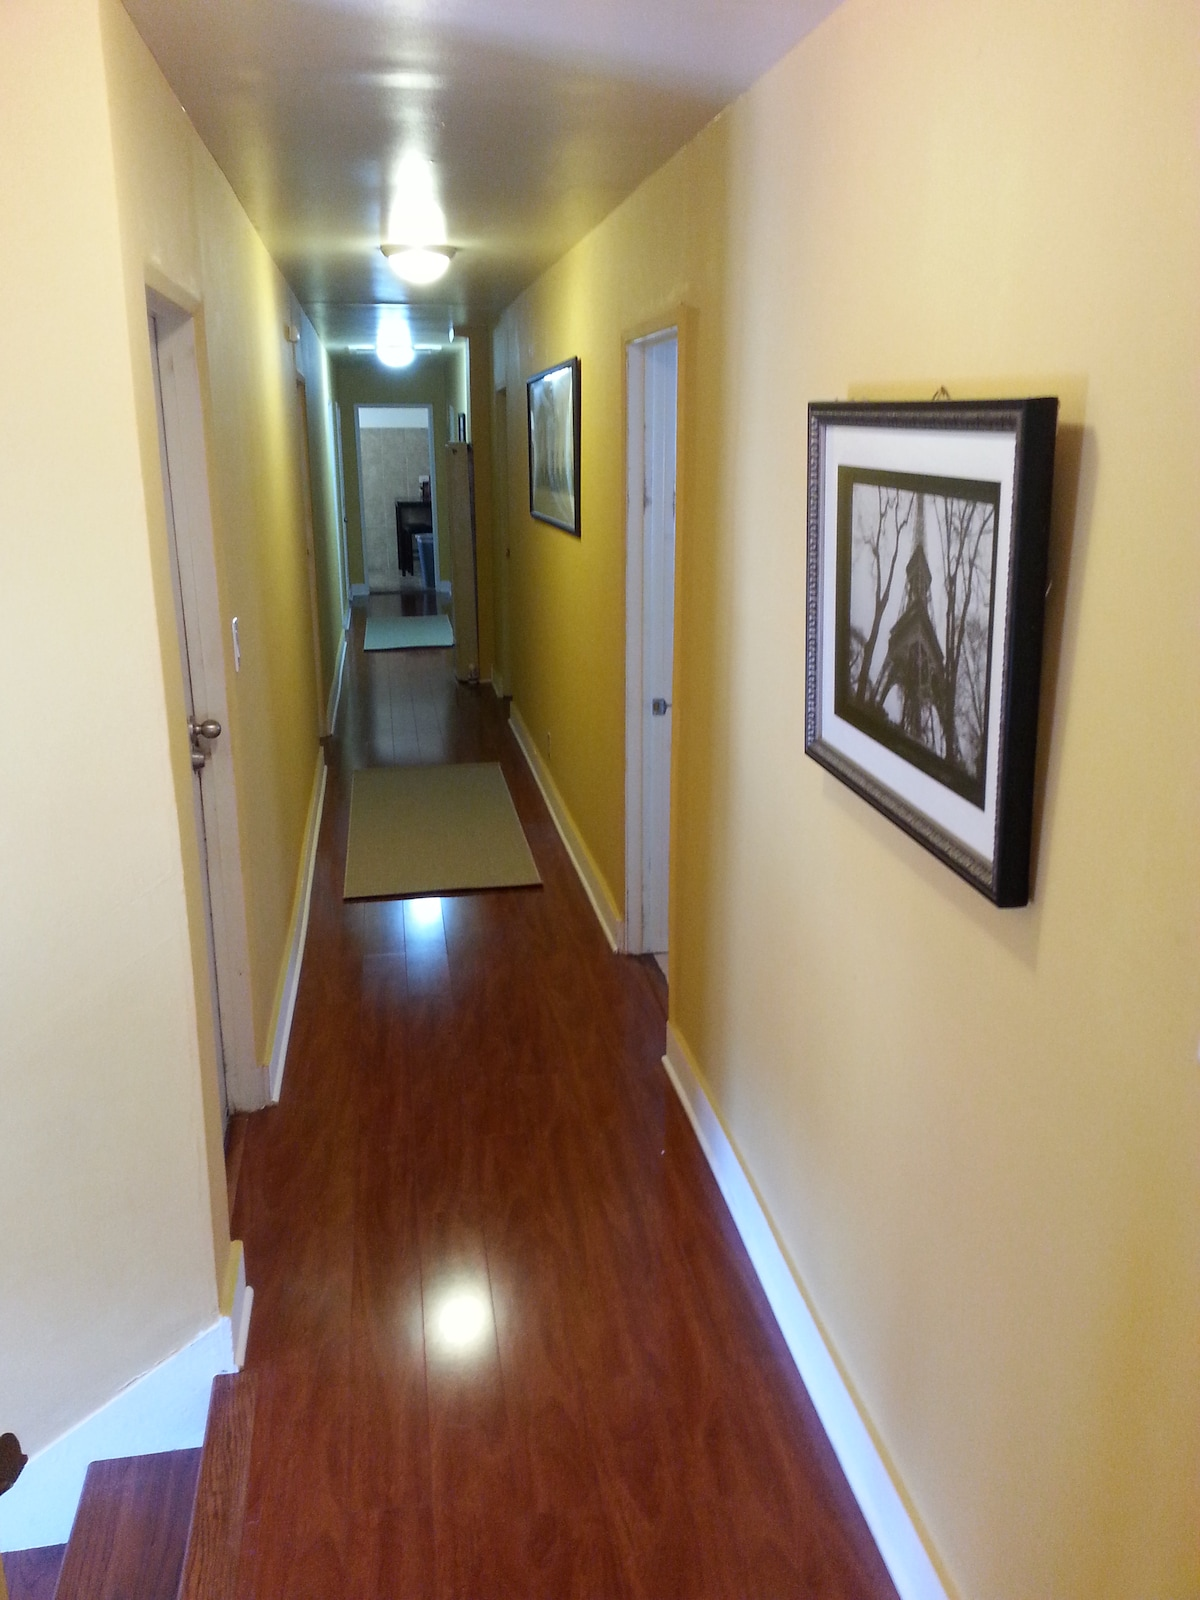 hallway leading to rooms and kitchen at end of hallway